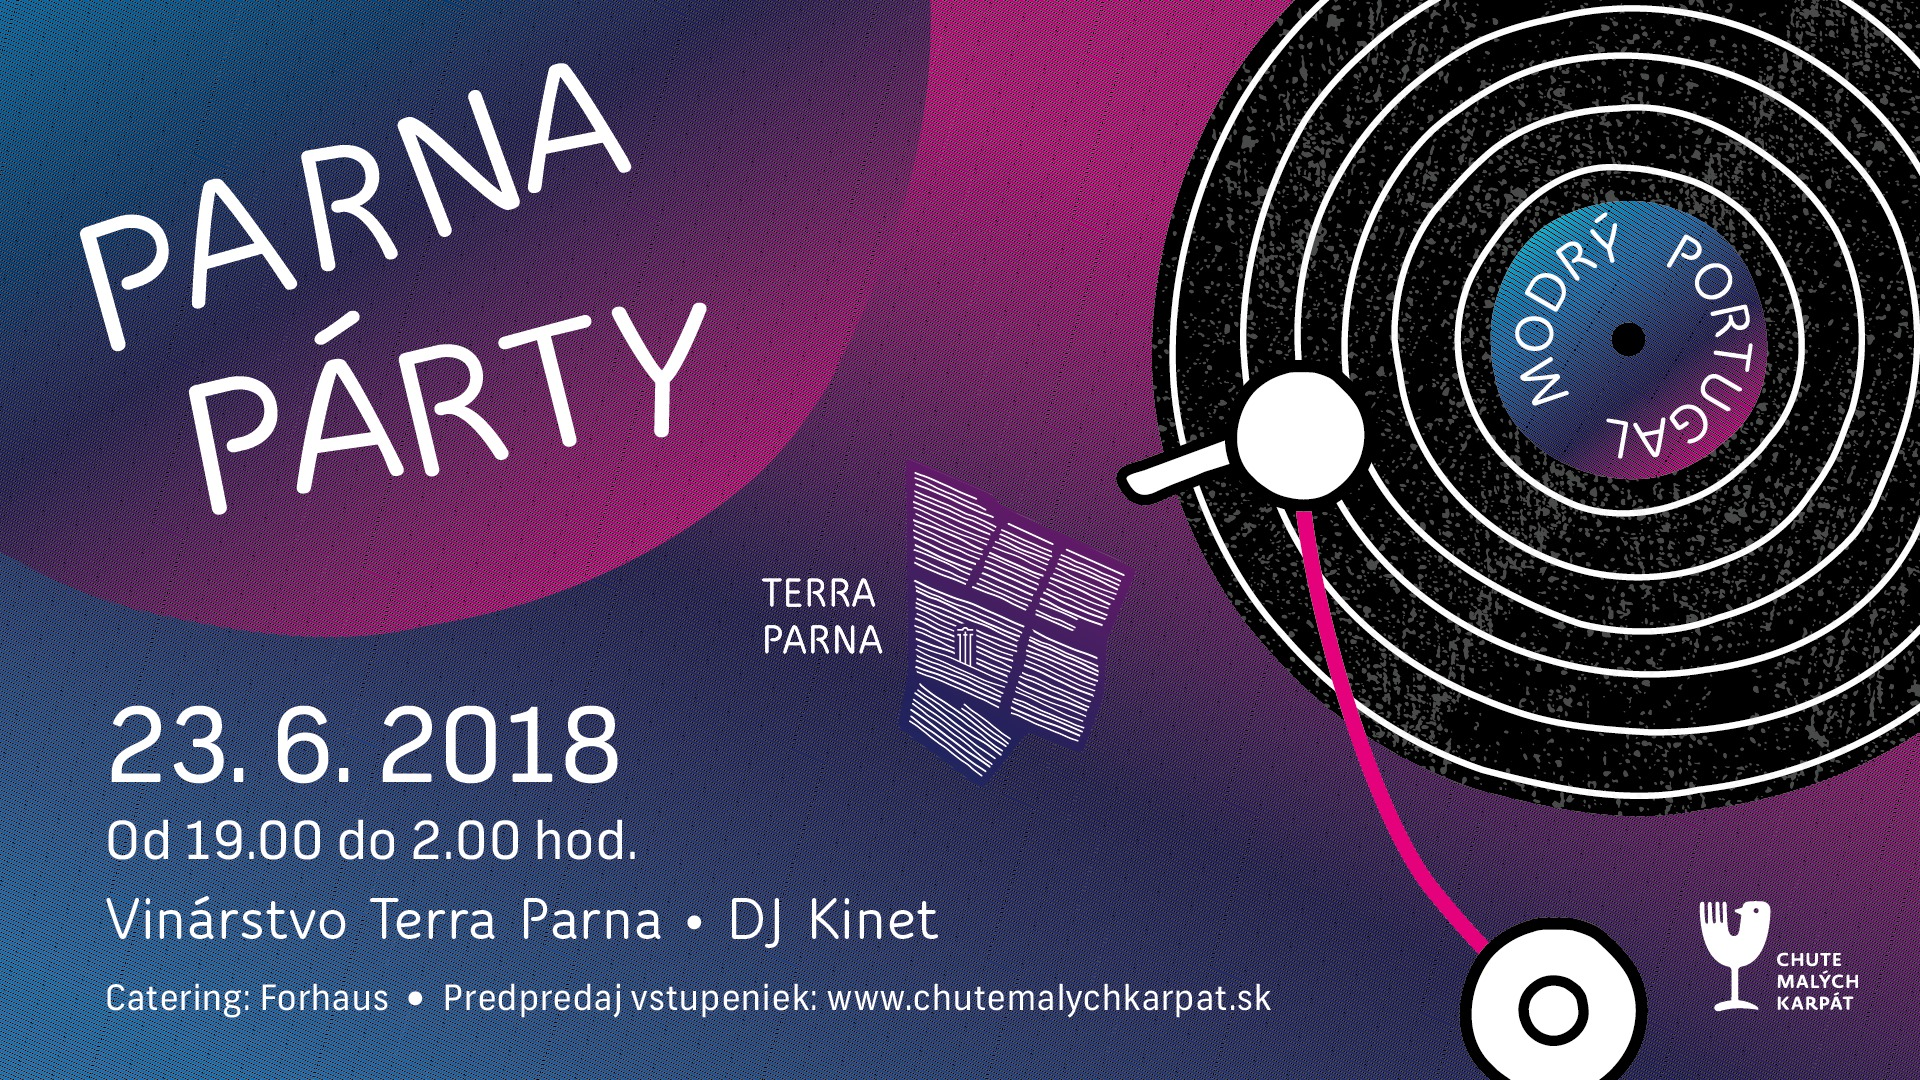 parna_party_logo